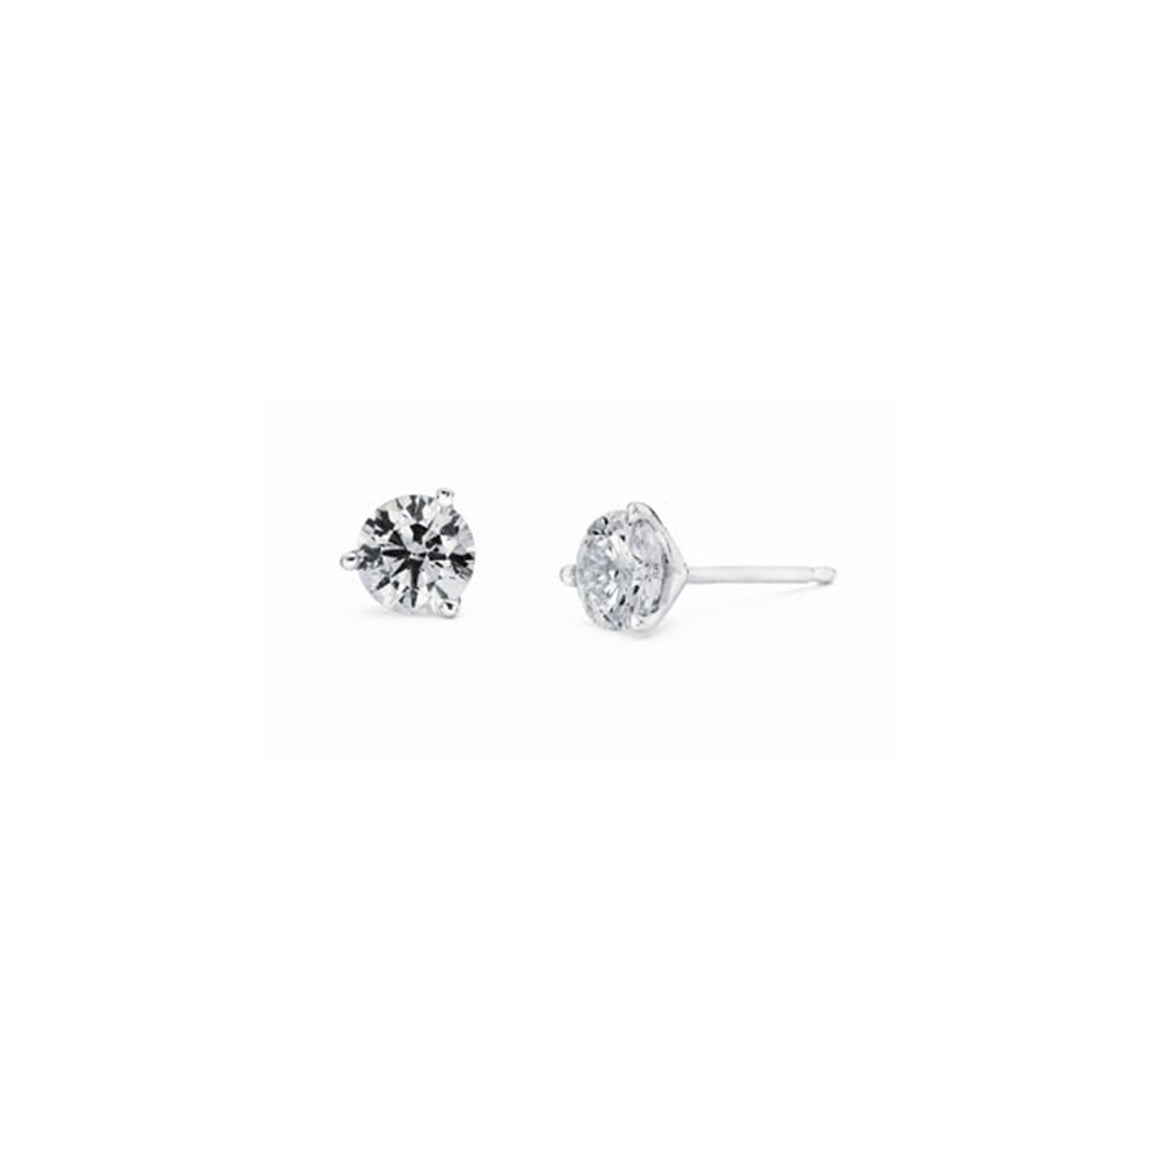 Diamond Stud 3-Prong Earrings, 0.25 Carat Total Weight in 14k White, Yellow or Rose Gold